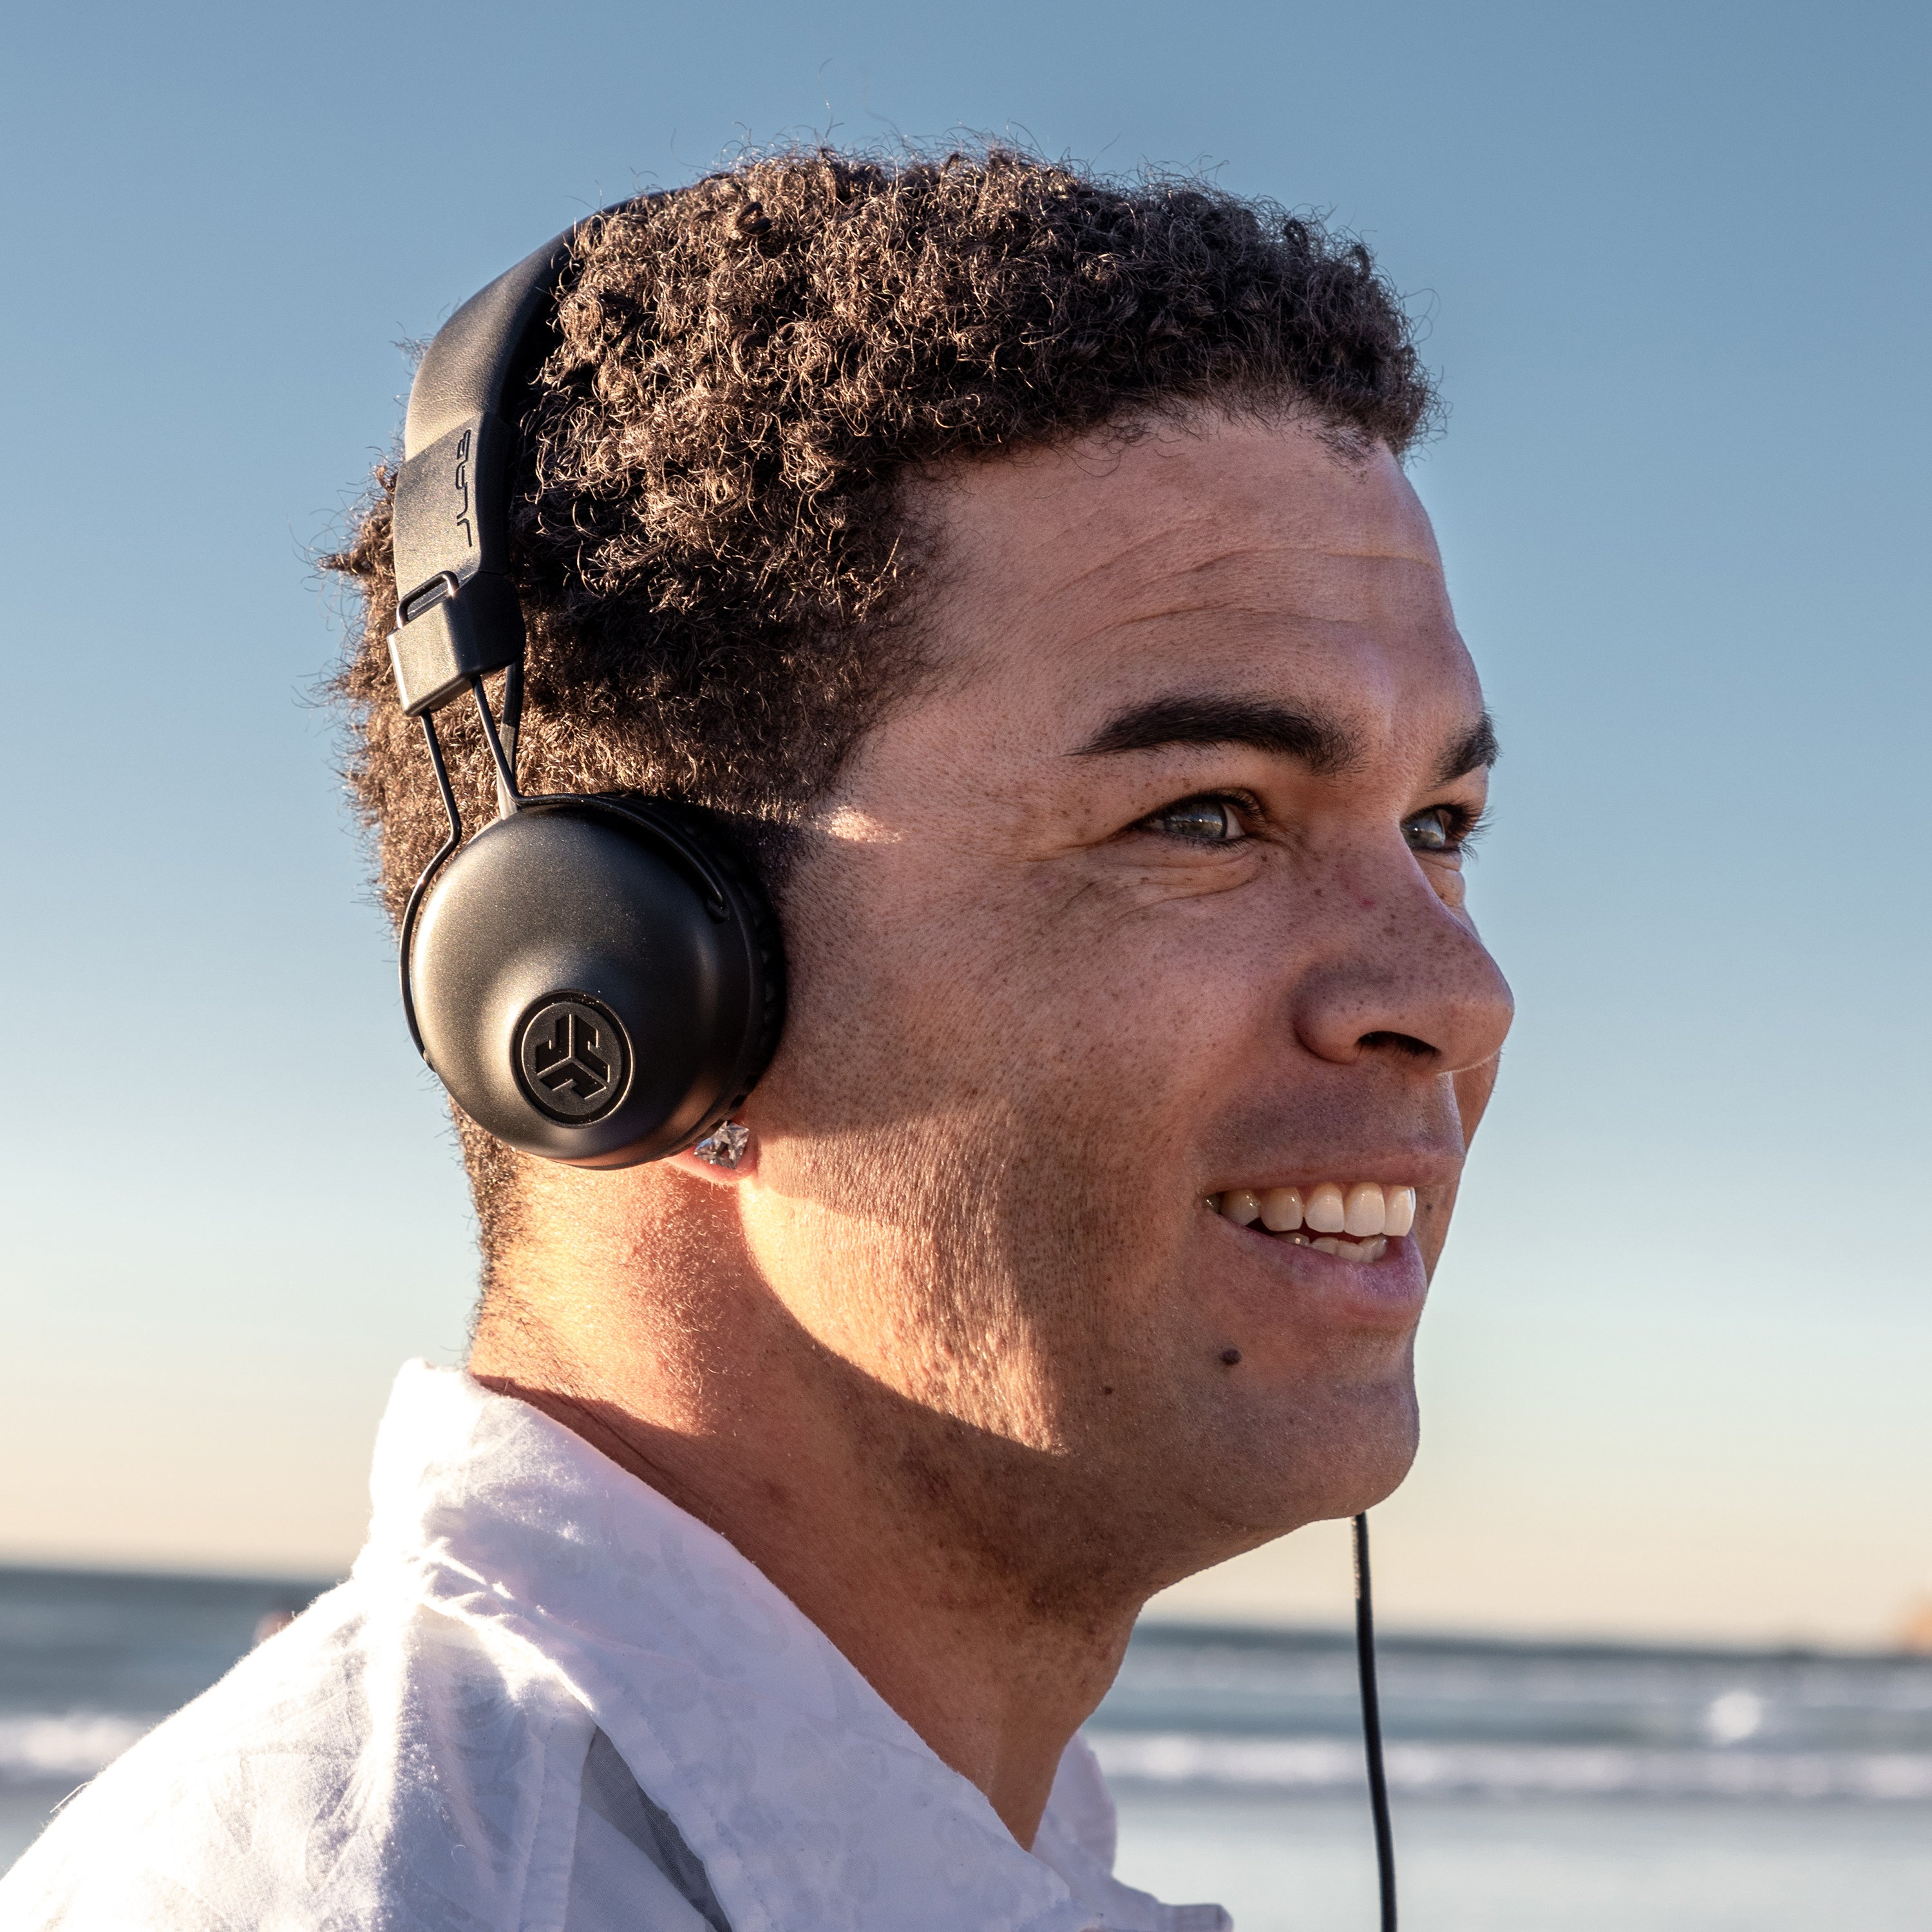 Guy wearing Studio On-Ear Headphones